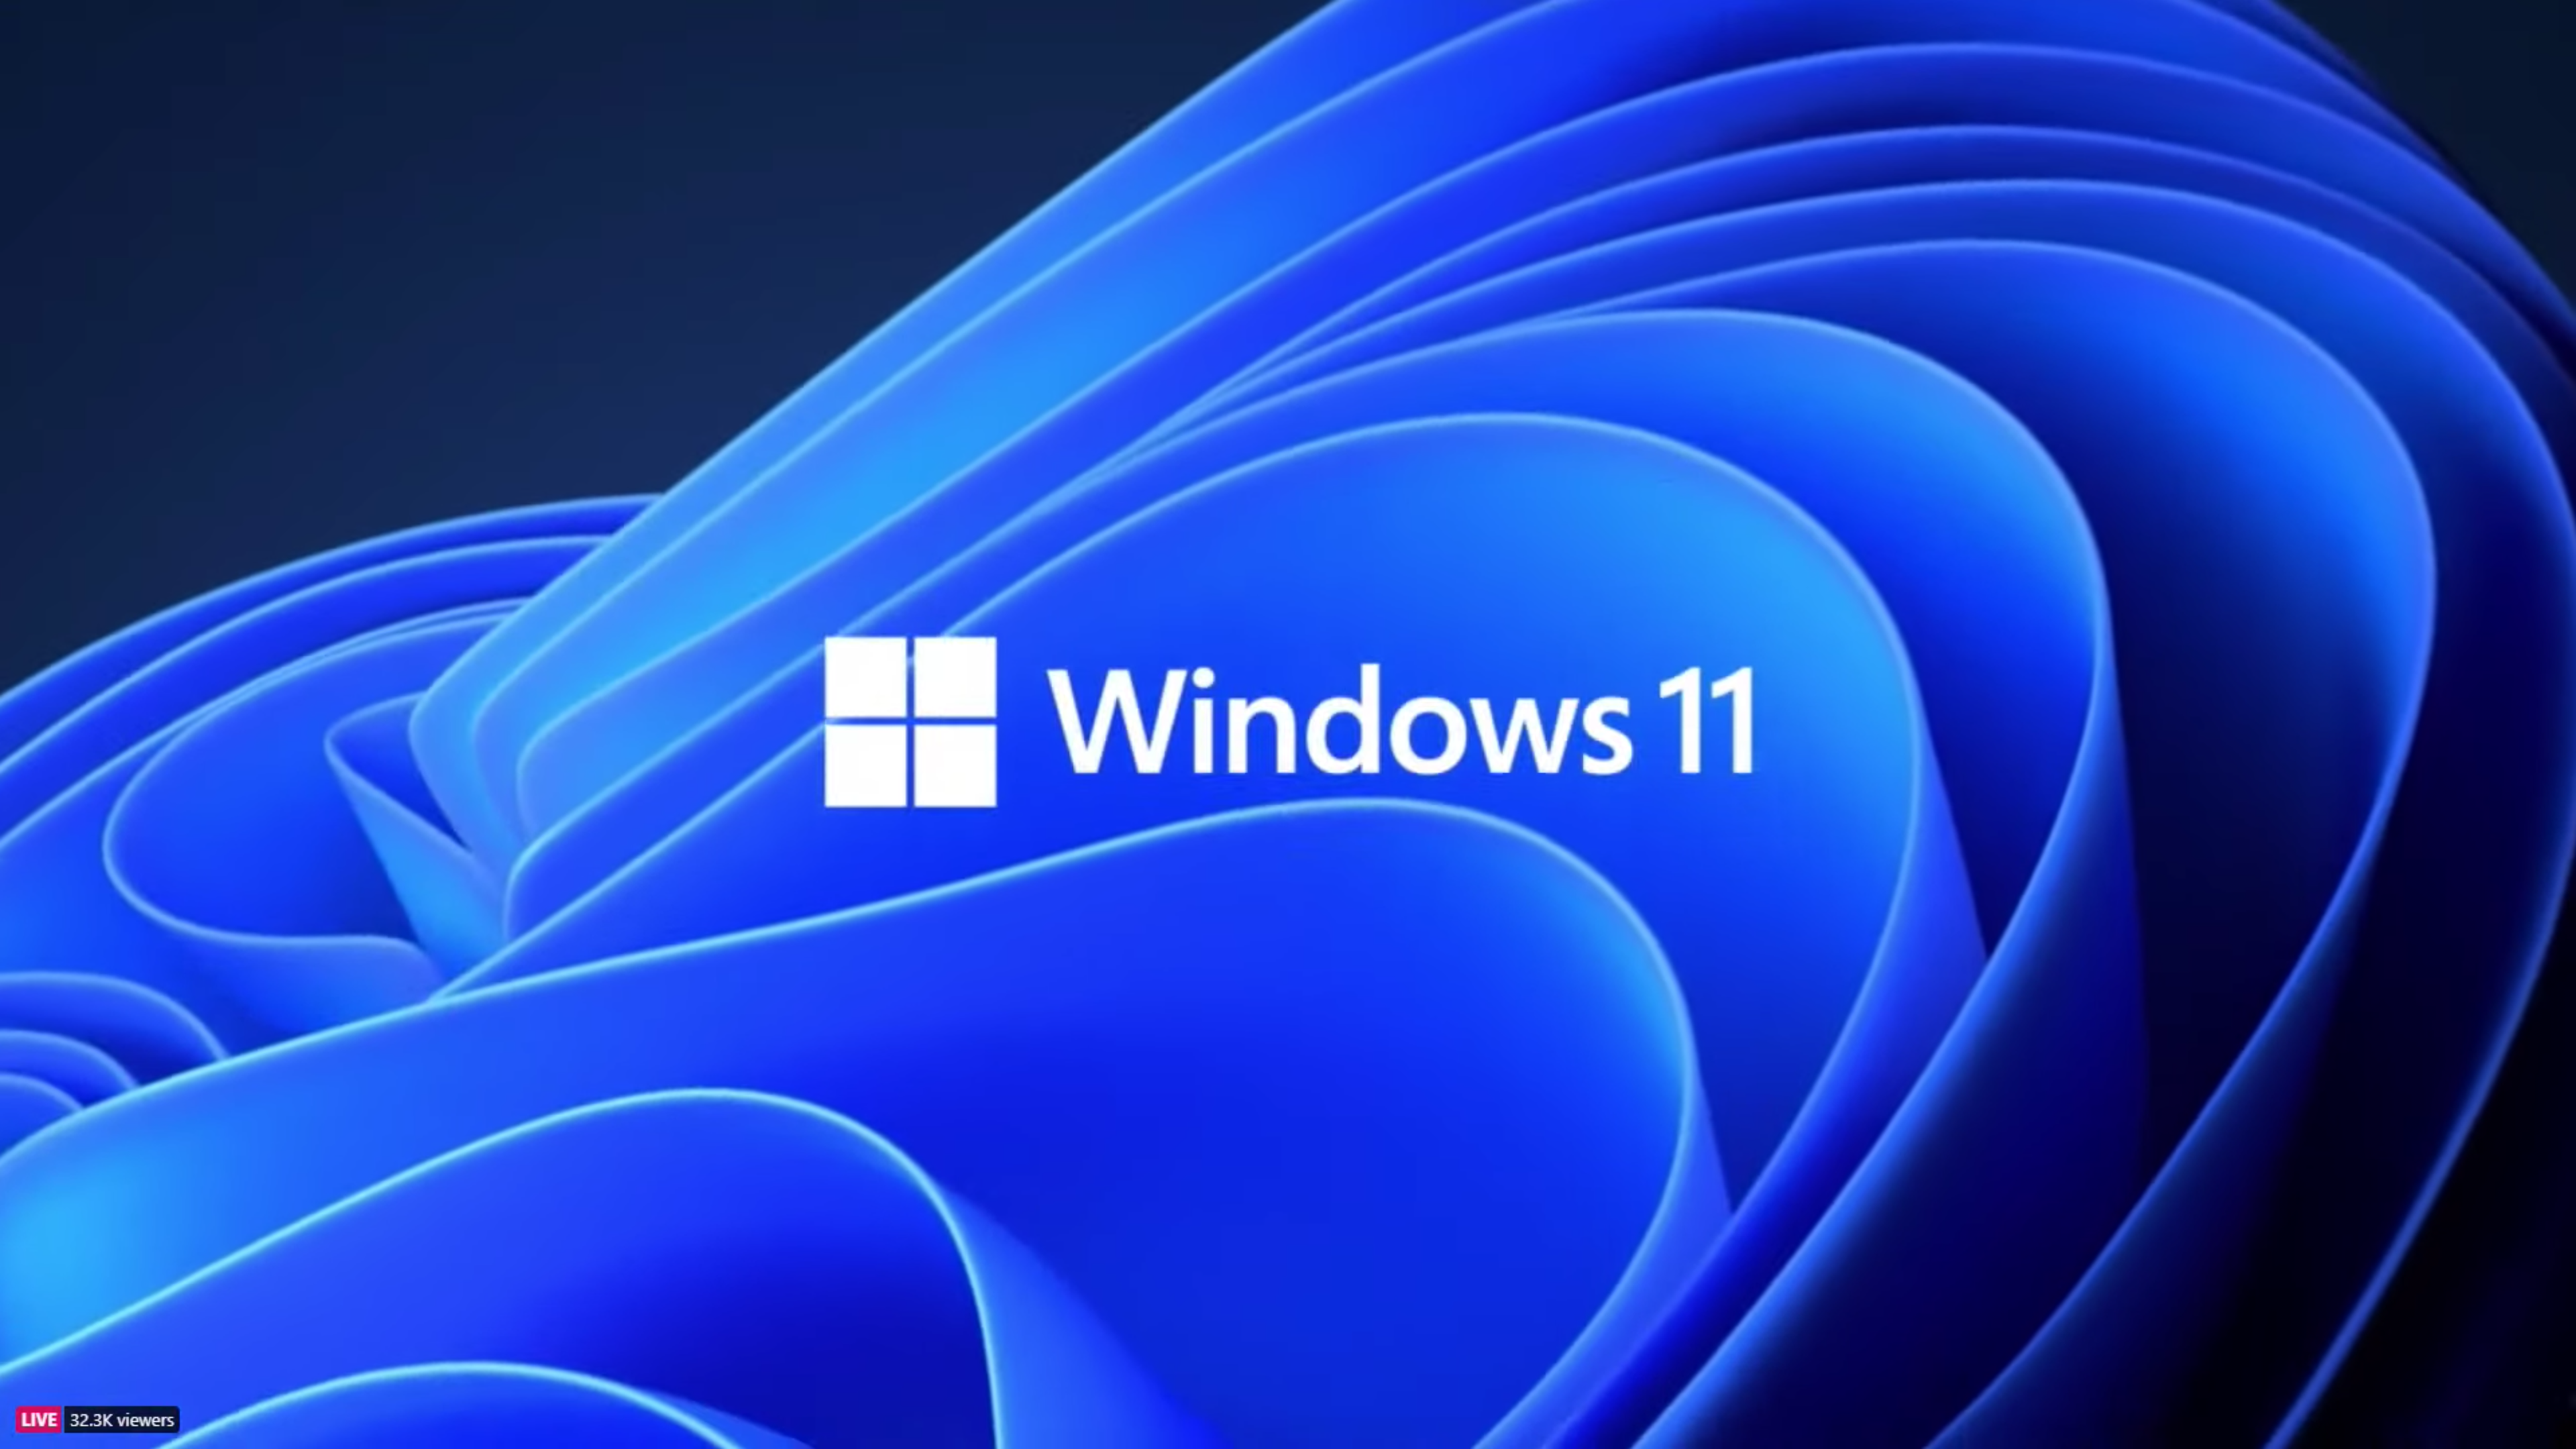 Microsoft will require an internet connection and account to activate Windows 11 Home - CNET